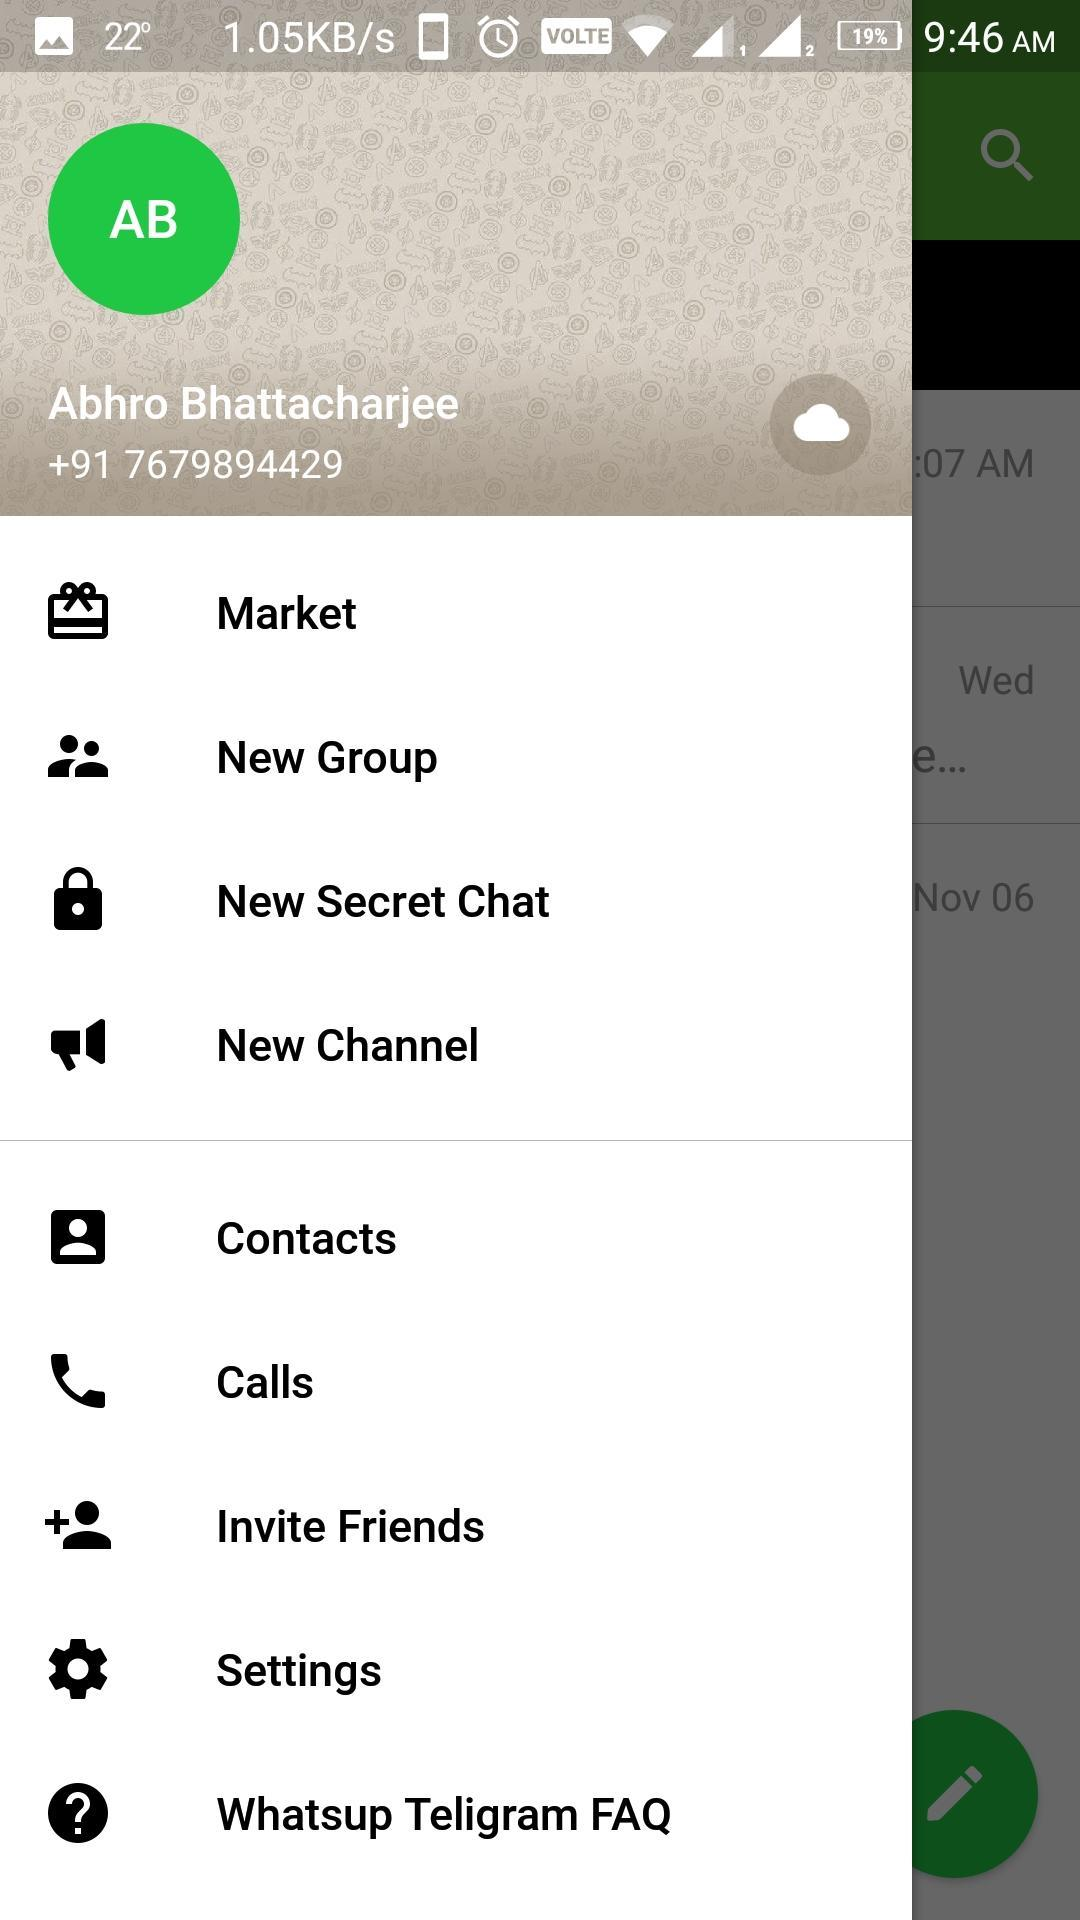 Fast Whatsapp Telegram for Android - APK Download